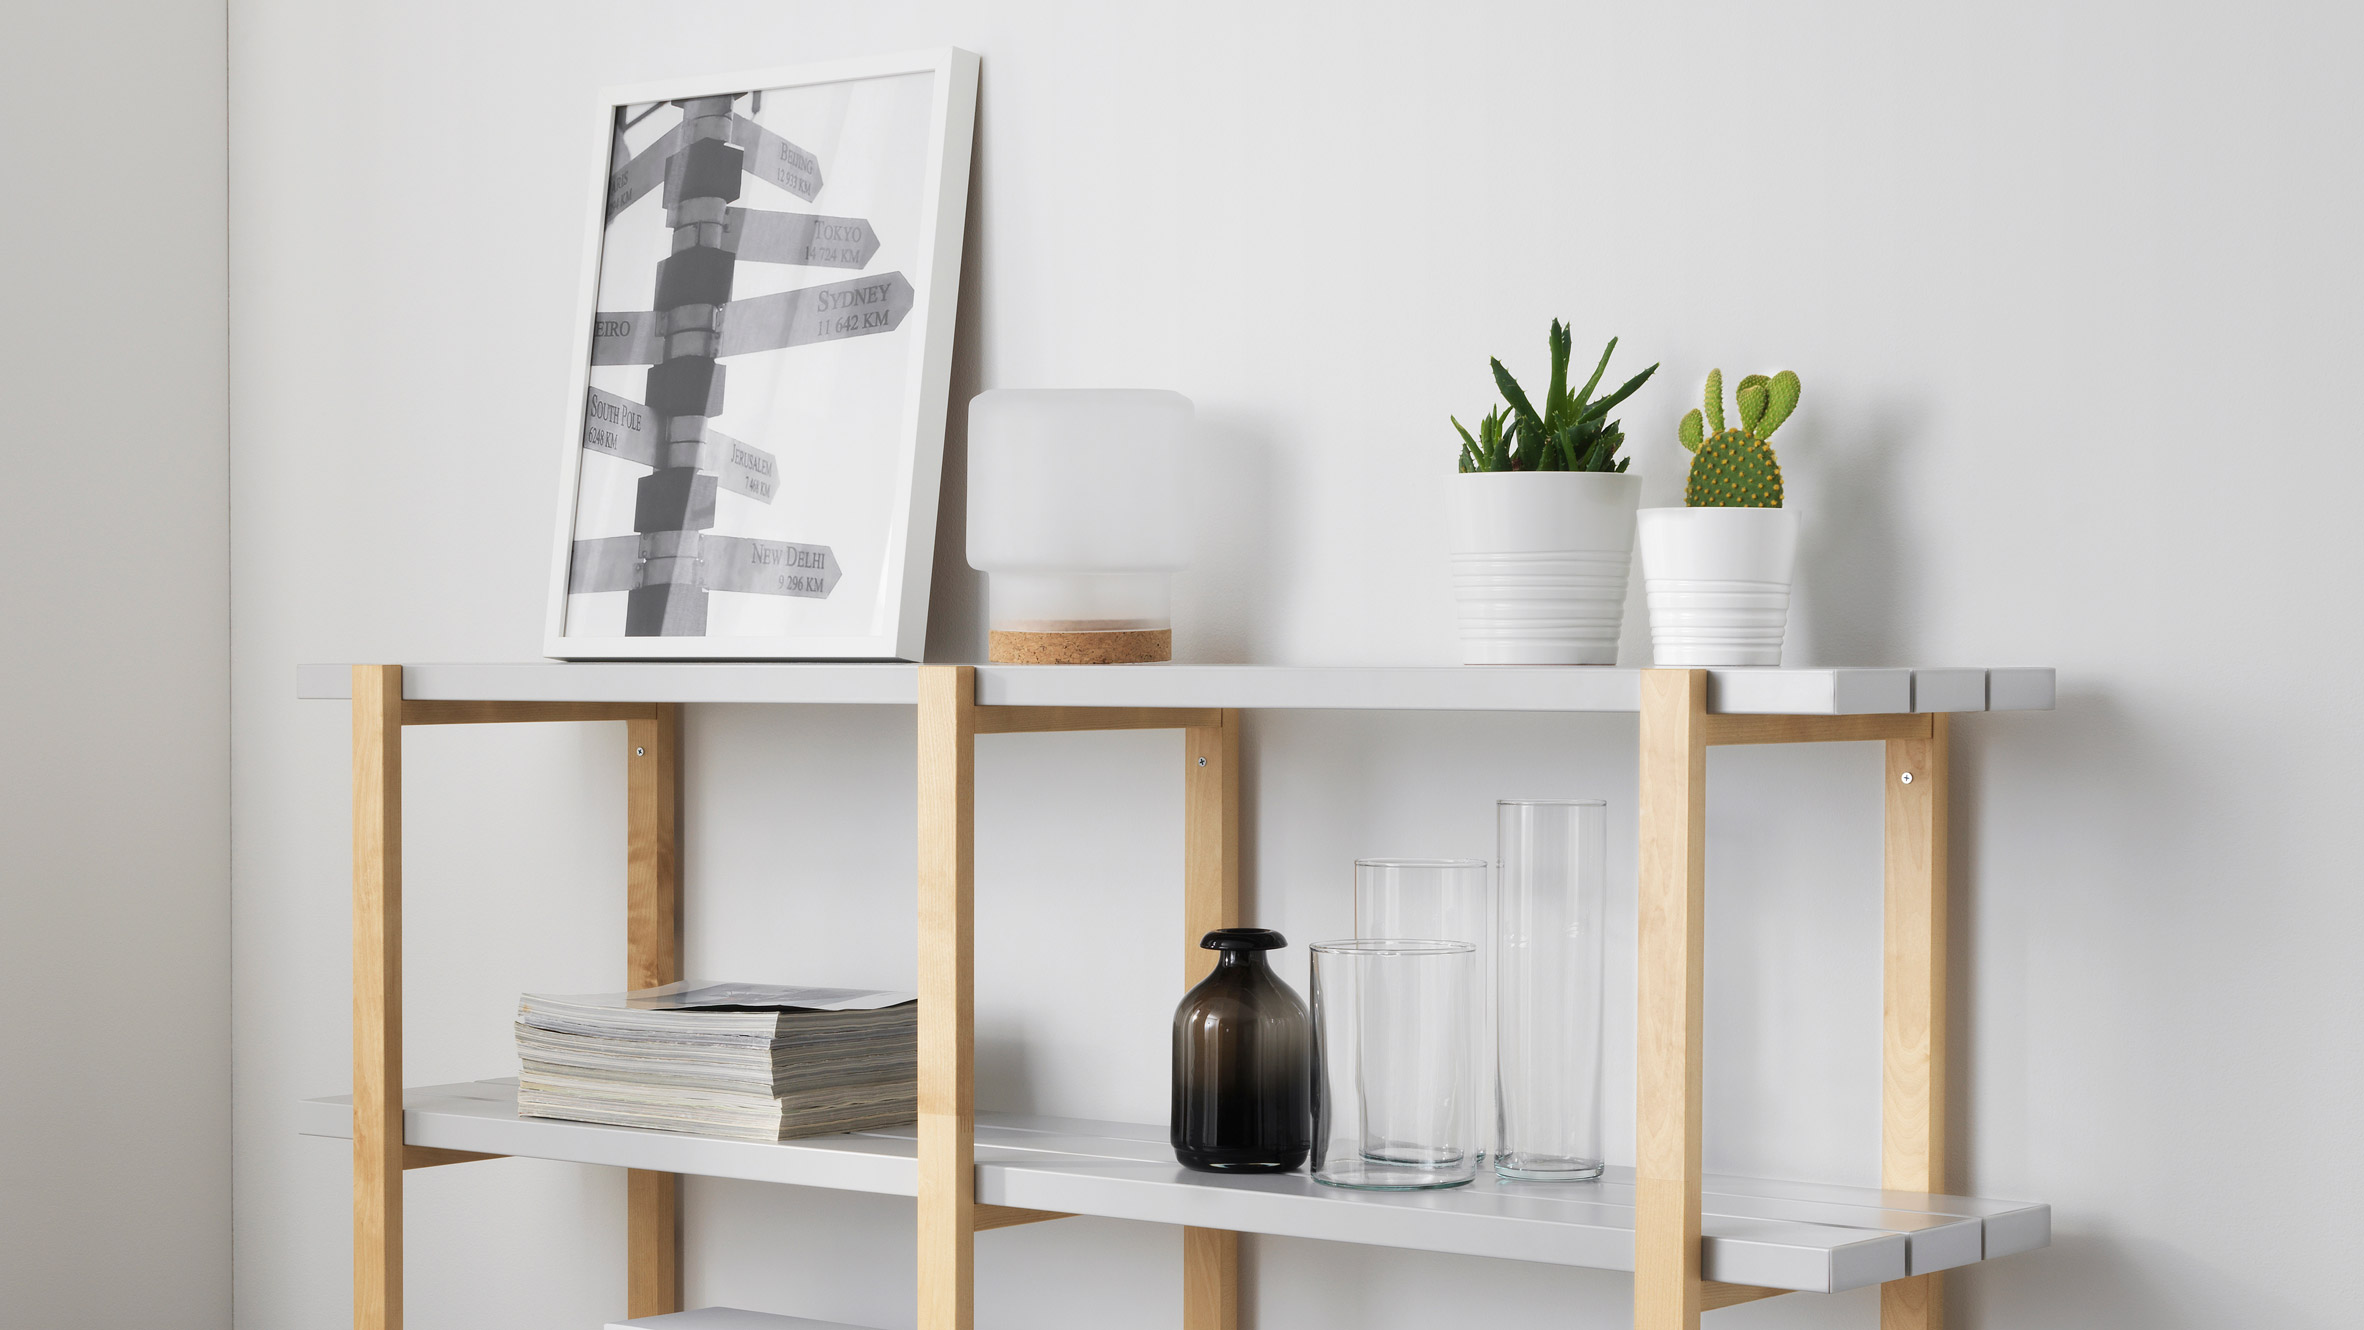 Ikea Ypperlig Ikea And Hay Reveal Full Collaborative Ypperlig Collection